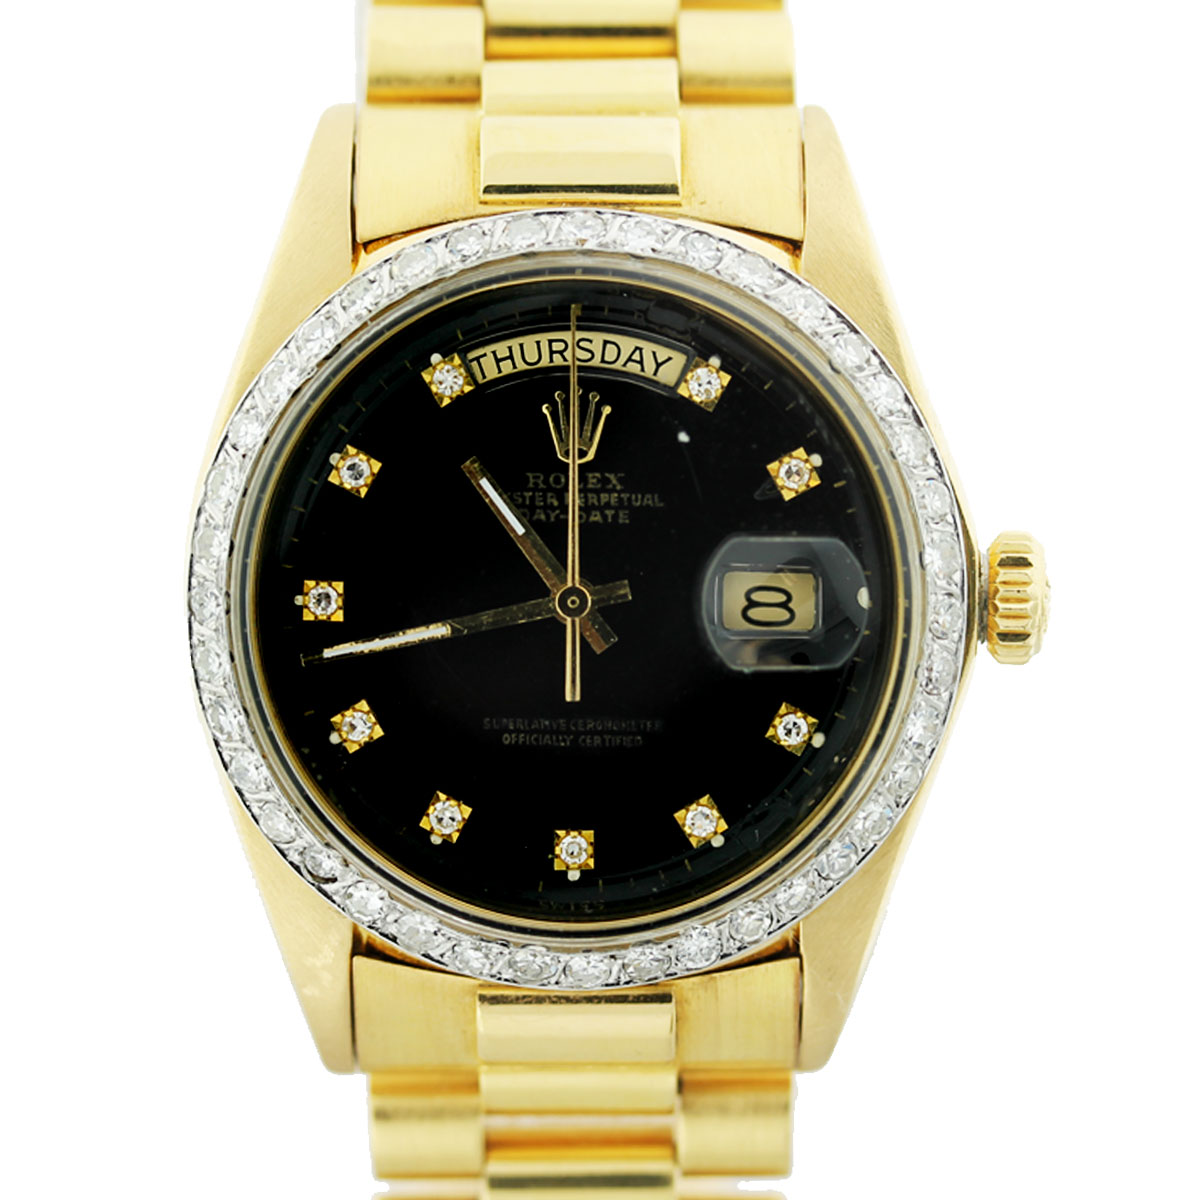 Rolex 1803 18k Yellow Gold President Black Diamond Dial Mens Watch